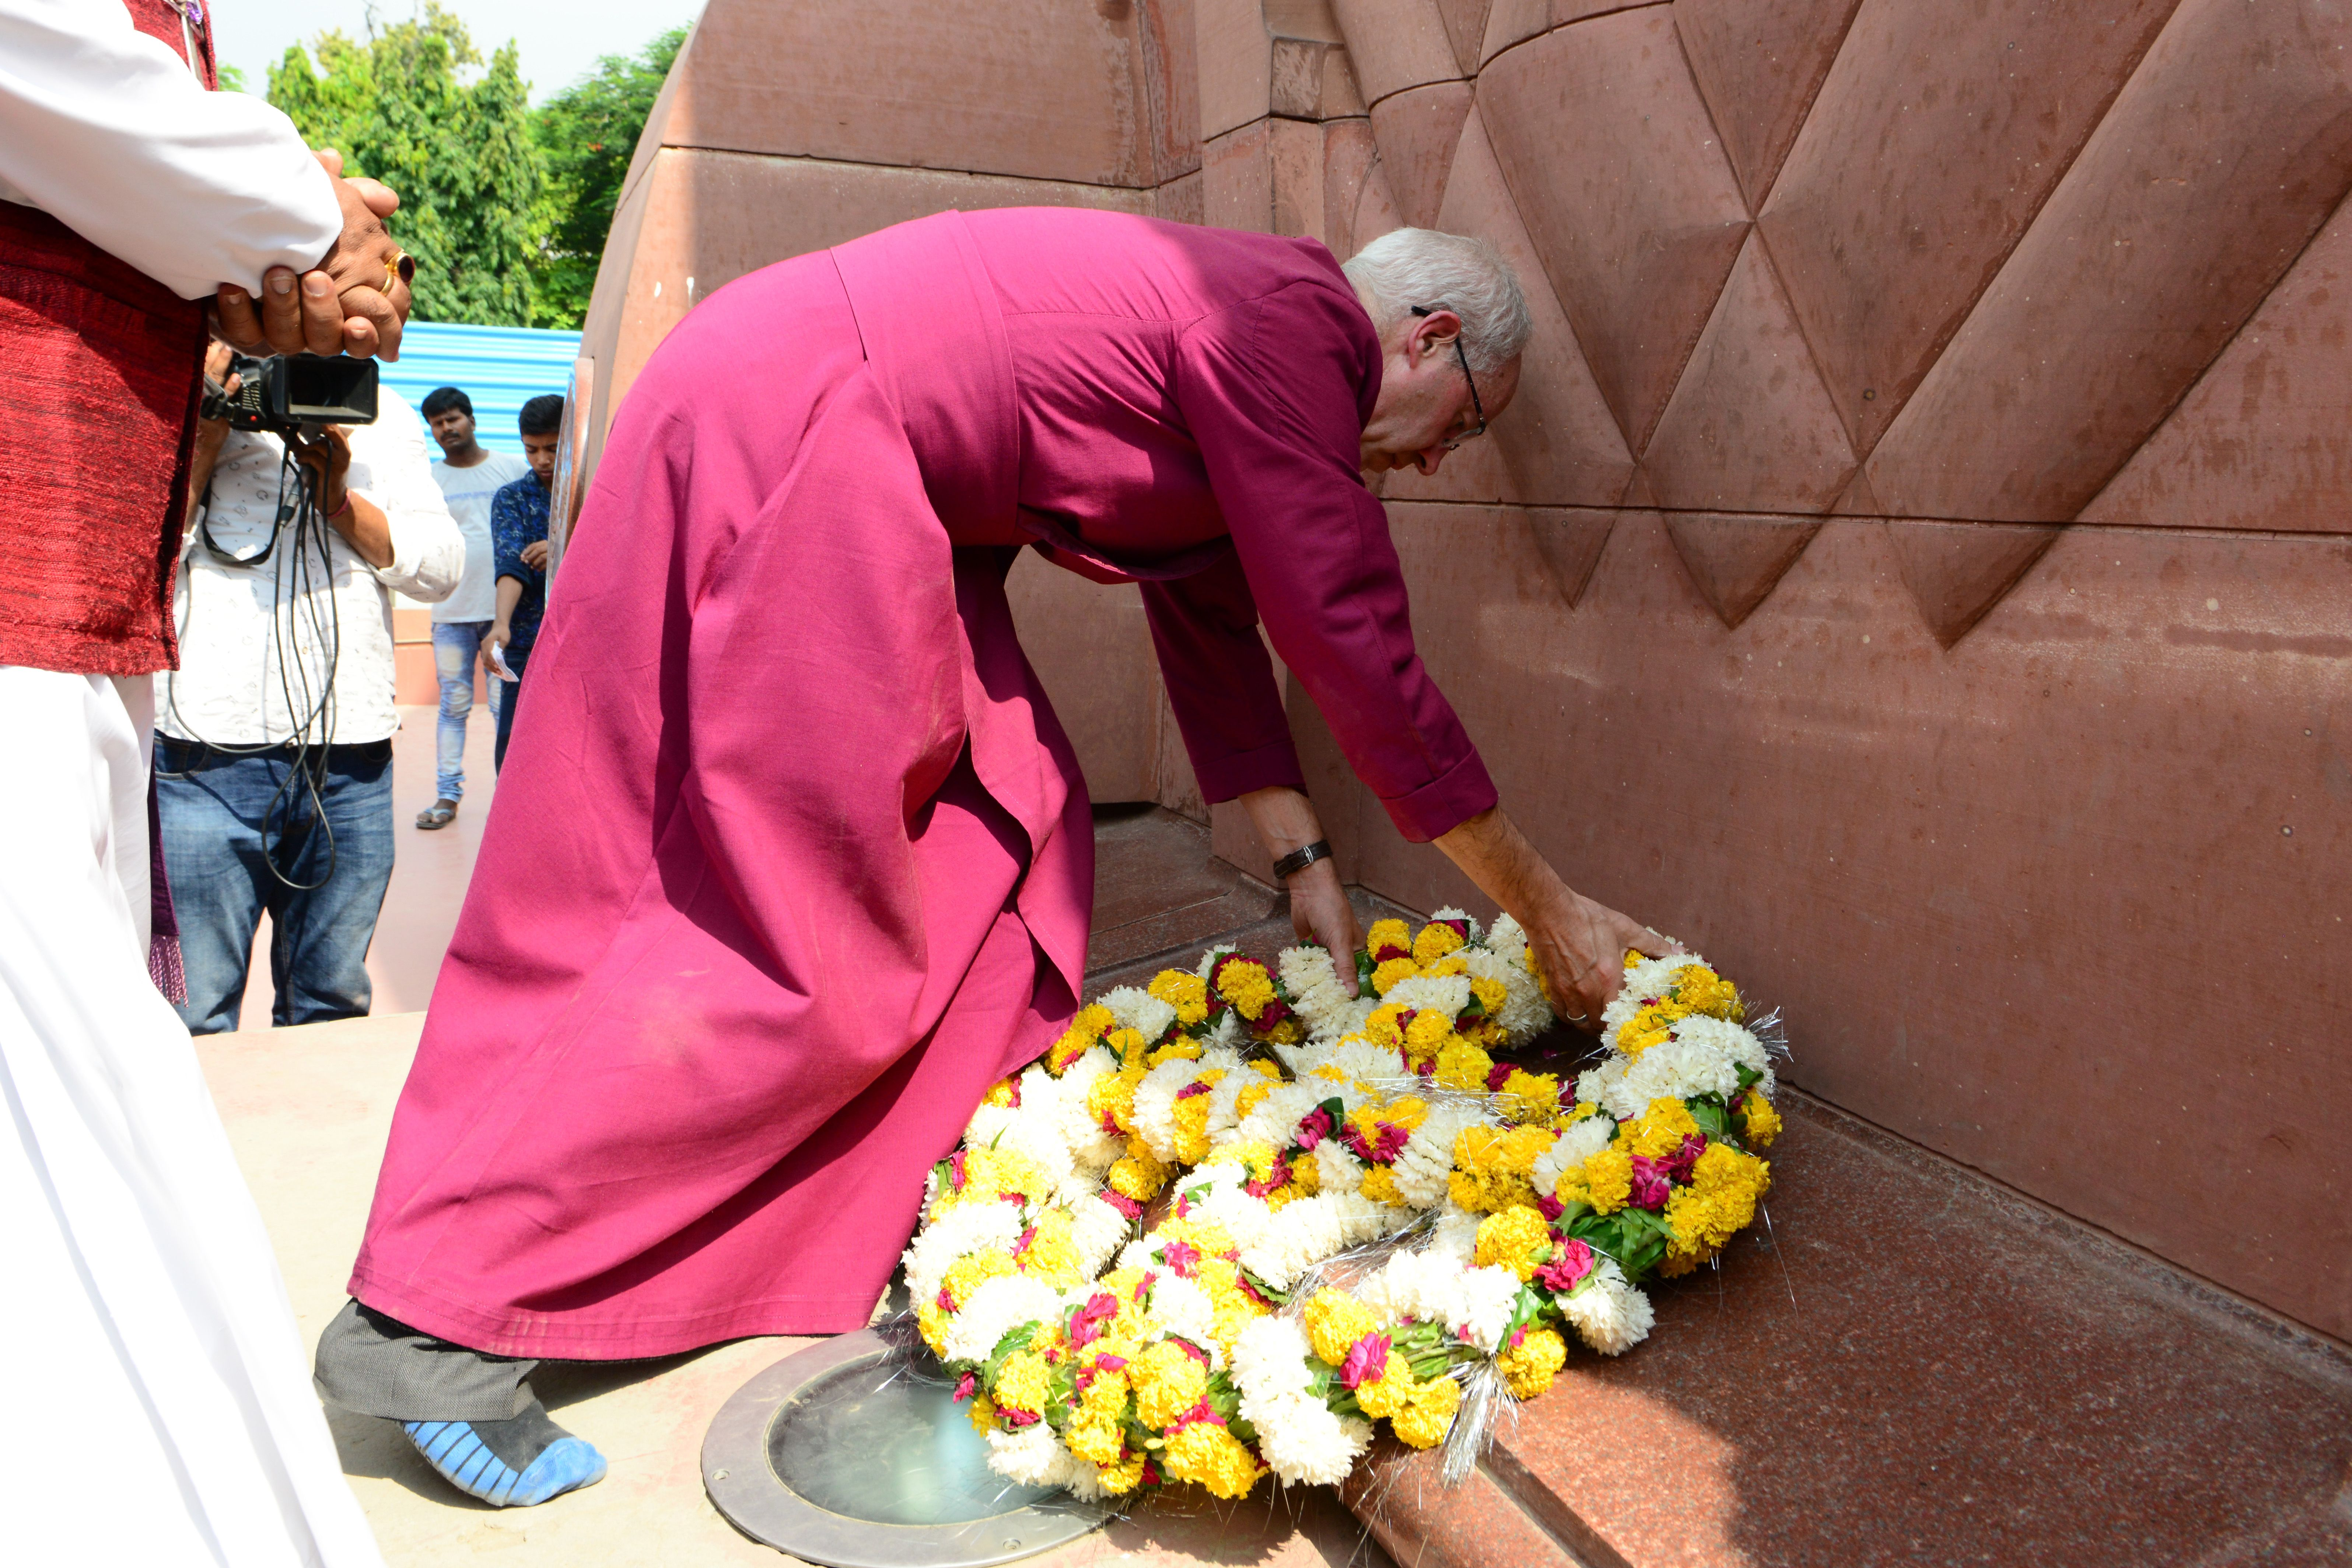 Archbishop of Canterbury Justin Welby lays a wreath to pay tribute to the martyrs at the Jallianwala Bagh memorial in Amritsar on September 10, 2019 (Photo credit: NARINDER NANU/AFP/Getty Images)